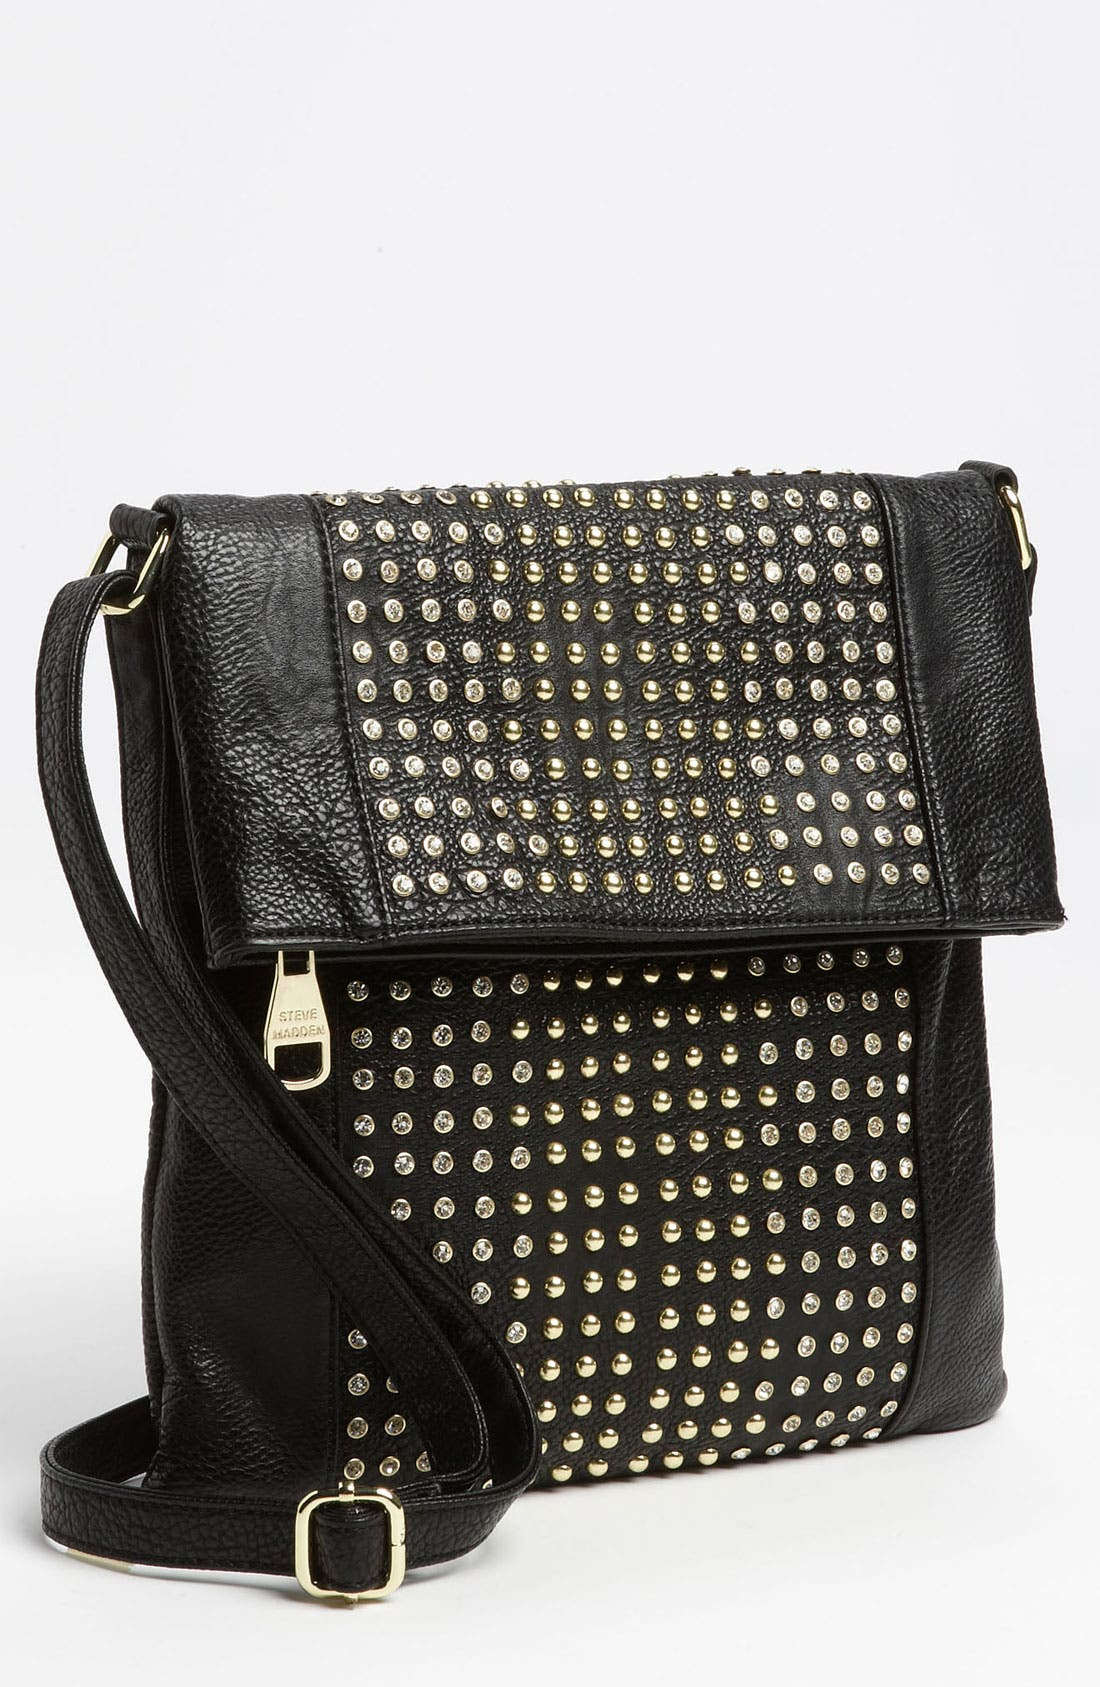 Alternate Image 1 Selected - Steve Madden 'Stud Love' Foldover Crossbody Bag